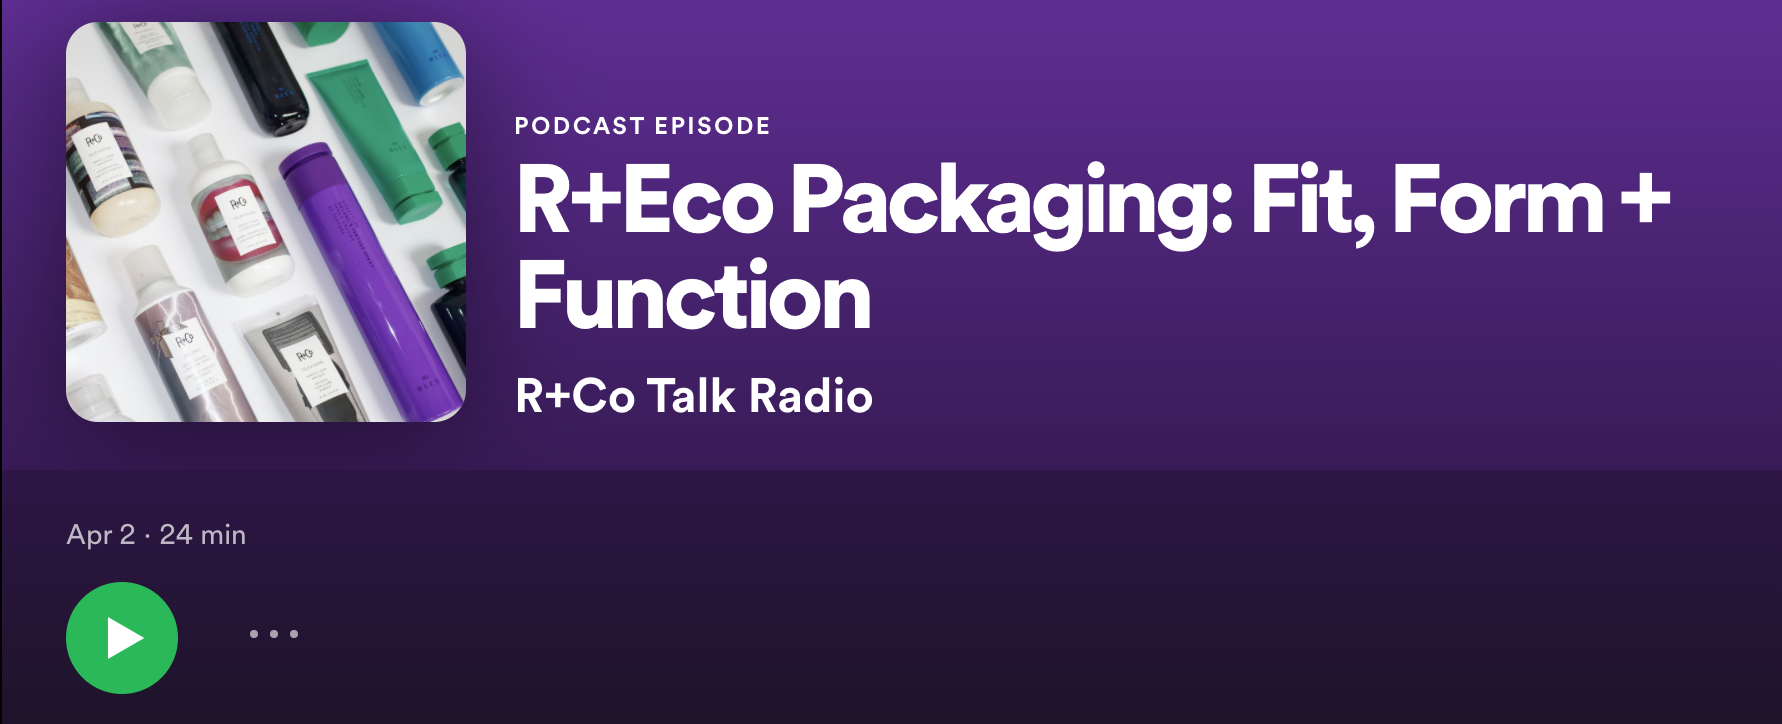 R+Eco Packaging Podcast